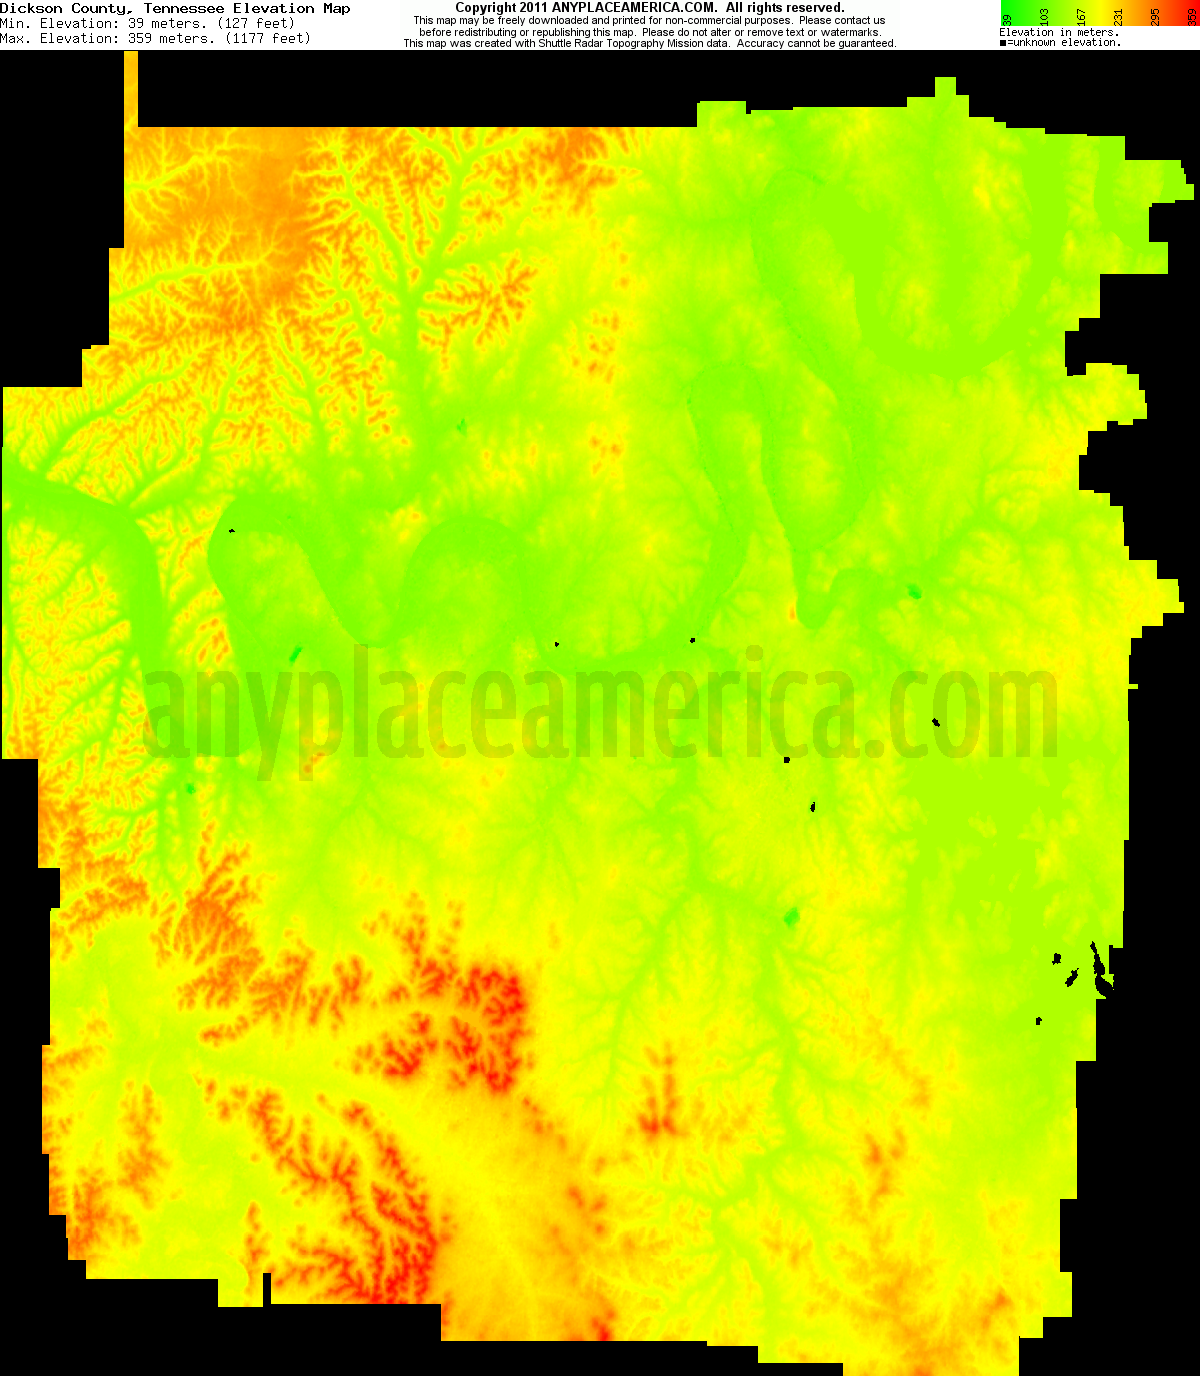 Dickson, Tennessee elevation map